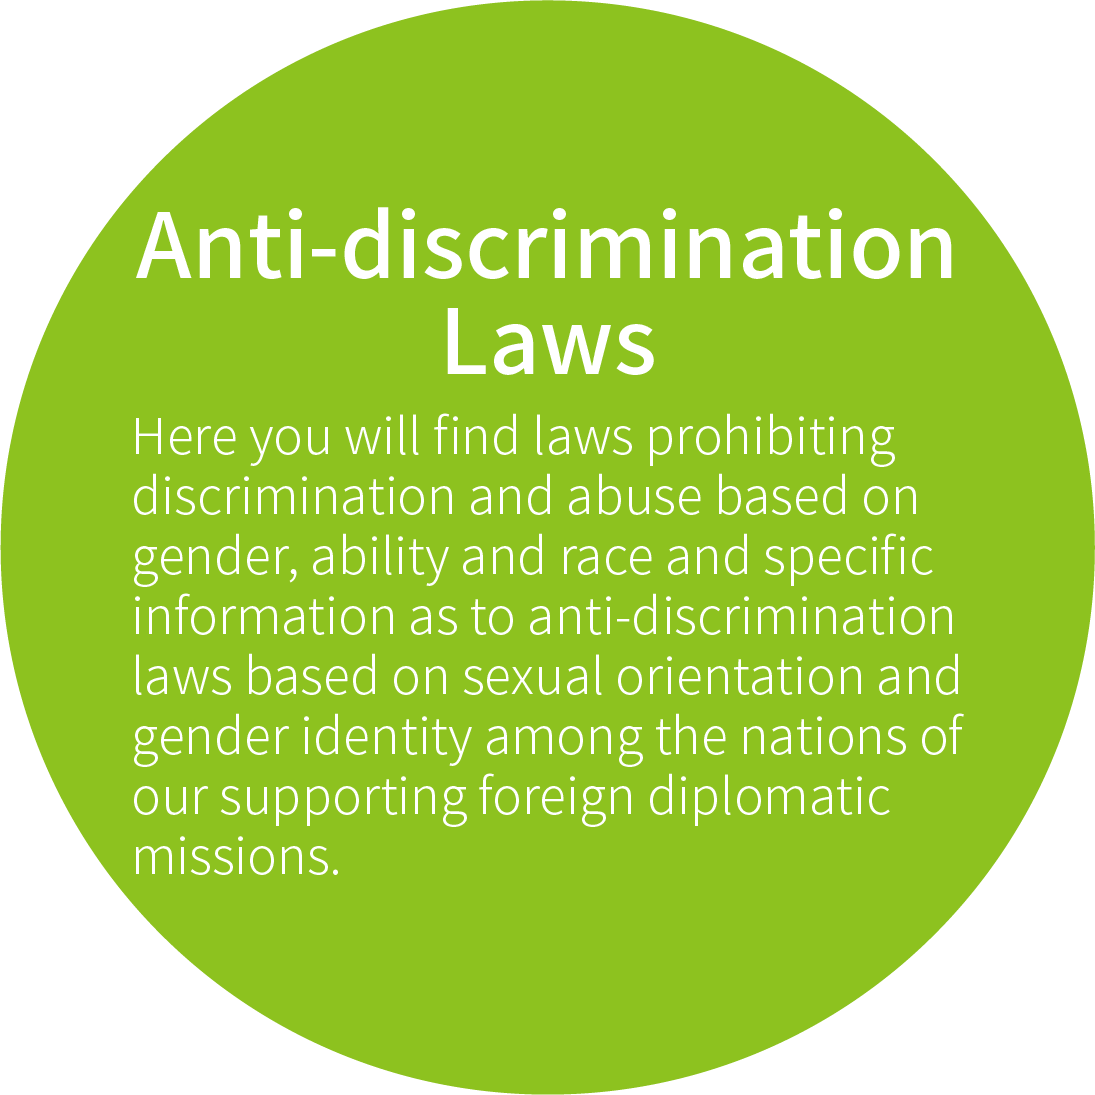 Anti-discrimination Laws Here you will find laws prohibiting discrimination and abuse based on gender, ability and race and specific information as to anti-discrimination laws based on sexual orientation and gender identity among the nations of our supporting foreign diplomatic missions.